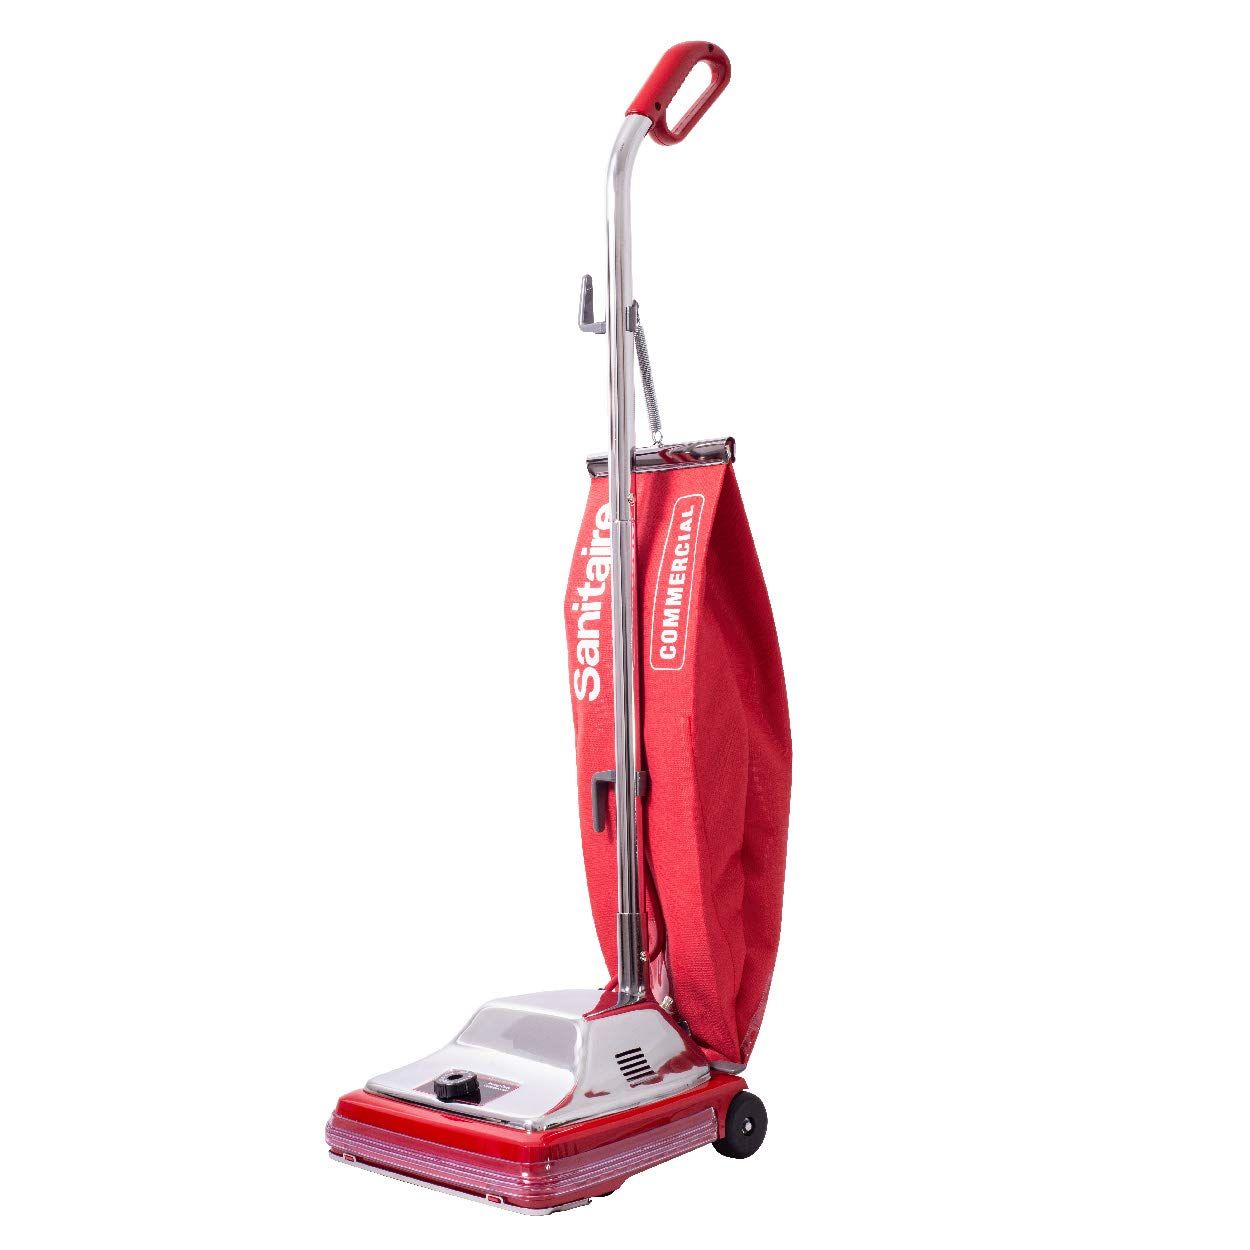 Sanitaire Tradition Upright Bagged Commercial Vacuum, SC886F by Sanitaire